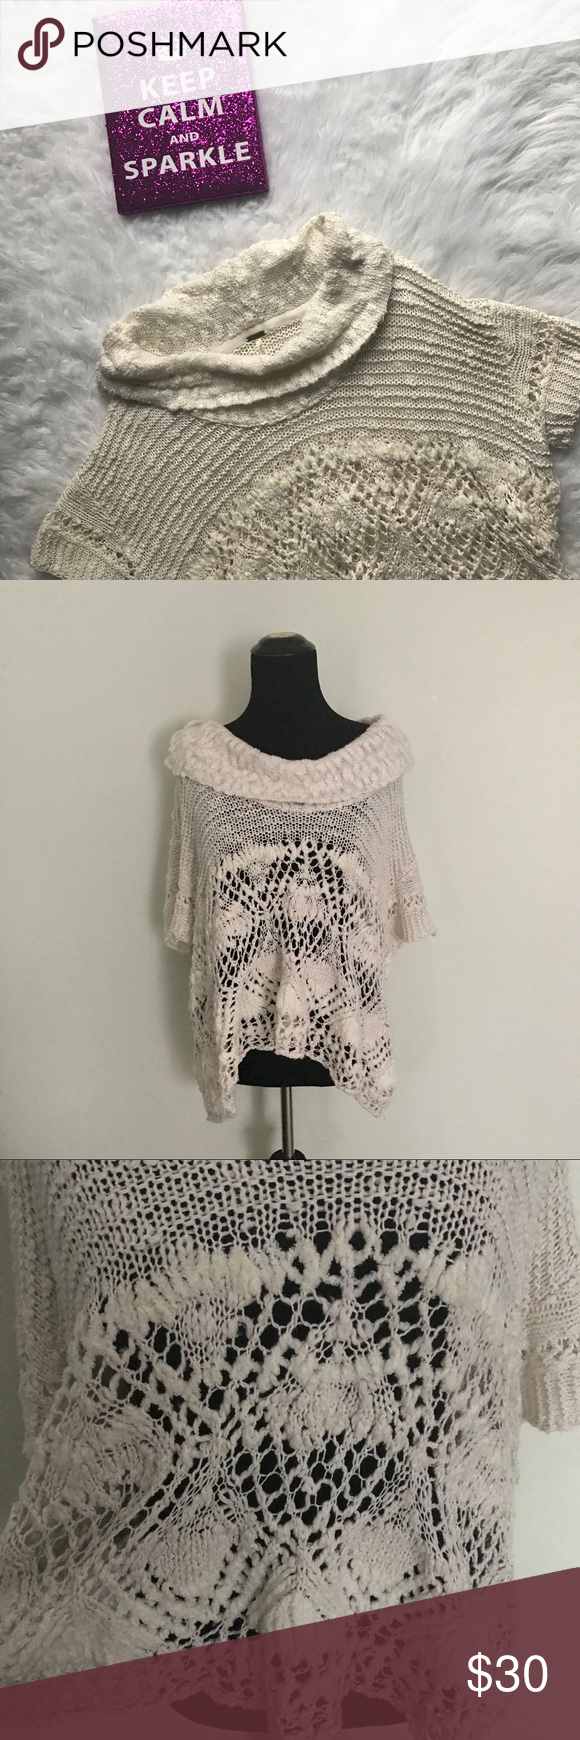 {Free People} Cream Cowl Neck Short Sleeve Sweater This beautiful short sleeve sweater is from Free People and is in a gorgeous Ivory color. Flattering and cozy cowl neck detail. No noticeable flaws. Size large.   🌸MEASUREMENTS & MATERIAL: 🌸 Bust: 21.5 inches across 🌸 Sleeve length: 12 inches 🌸 Sweater length: 23 inches 🌸 Cowl neck: 8 inches 🌸 88% cotton, 5% polyester, 4% rayon, 3% nylon 🌸Feel free to ask for a specific measurement! Free People Tops